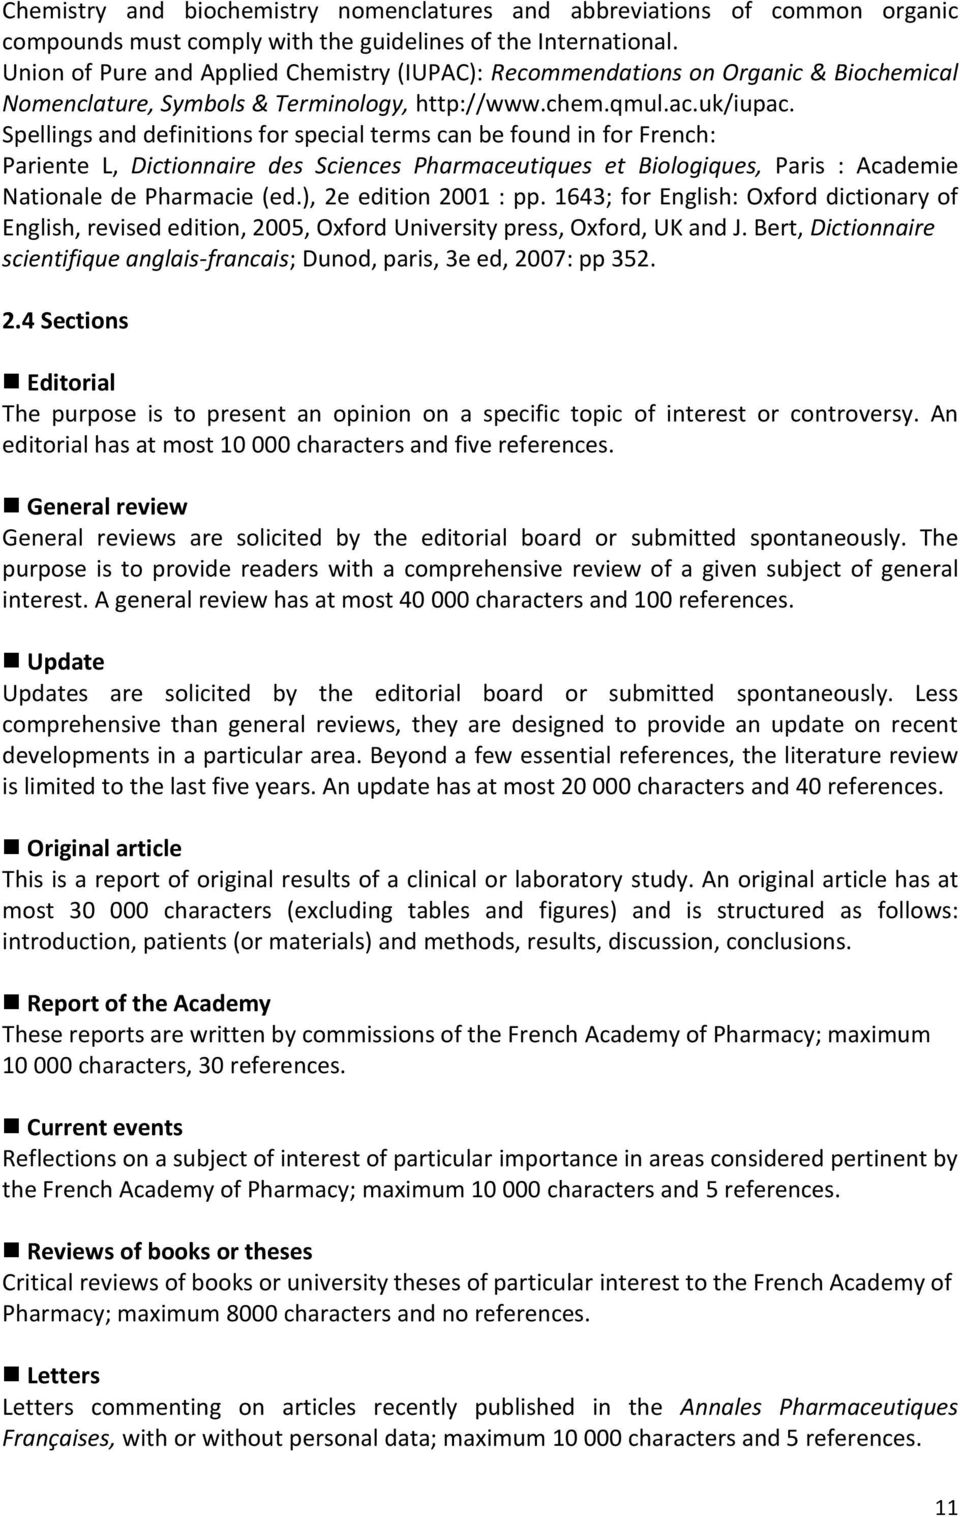 Spellings and definitions for special terms can be found in for French: Pariente L, Dictionnaire des Sciences Pharmaceutiques et Biologiques, Paris : Academie Nationale de Pharmacie (ed.